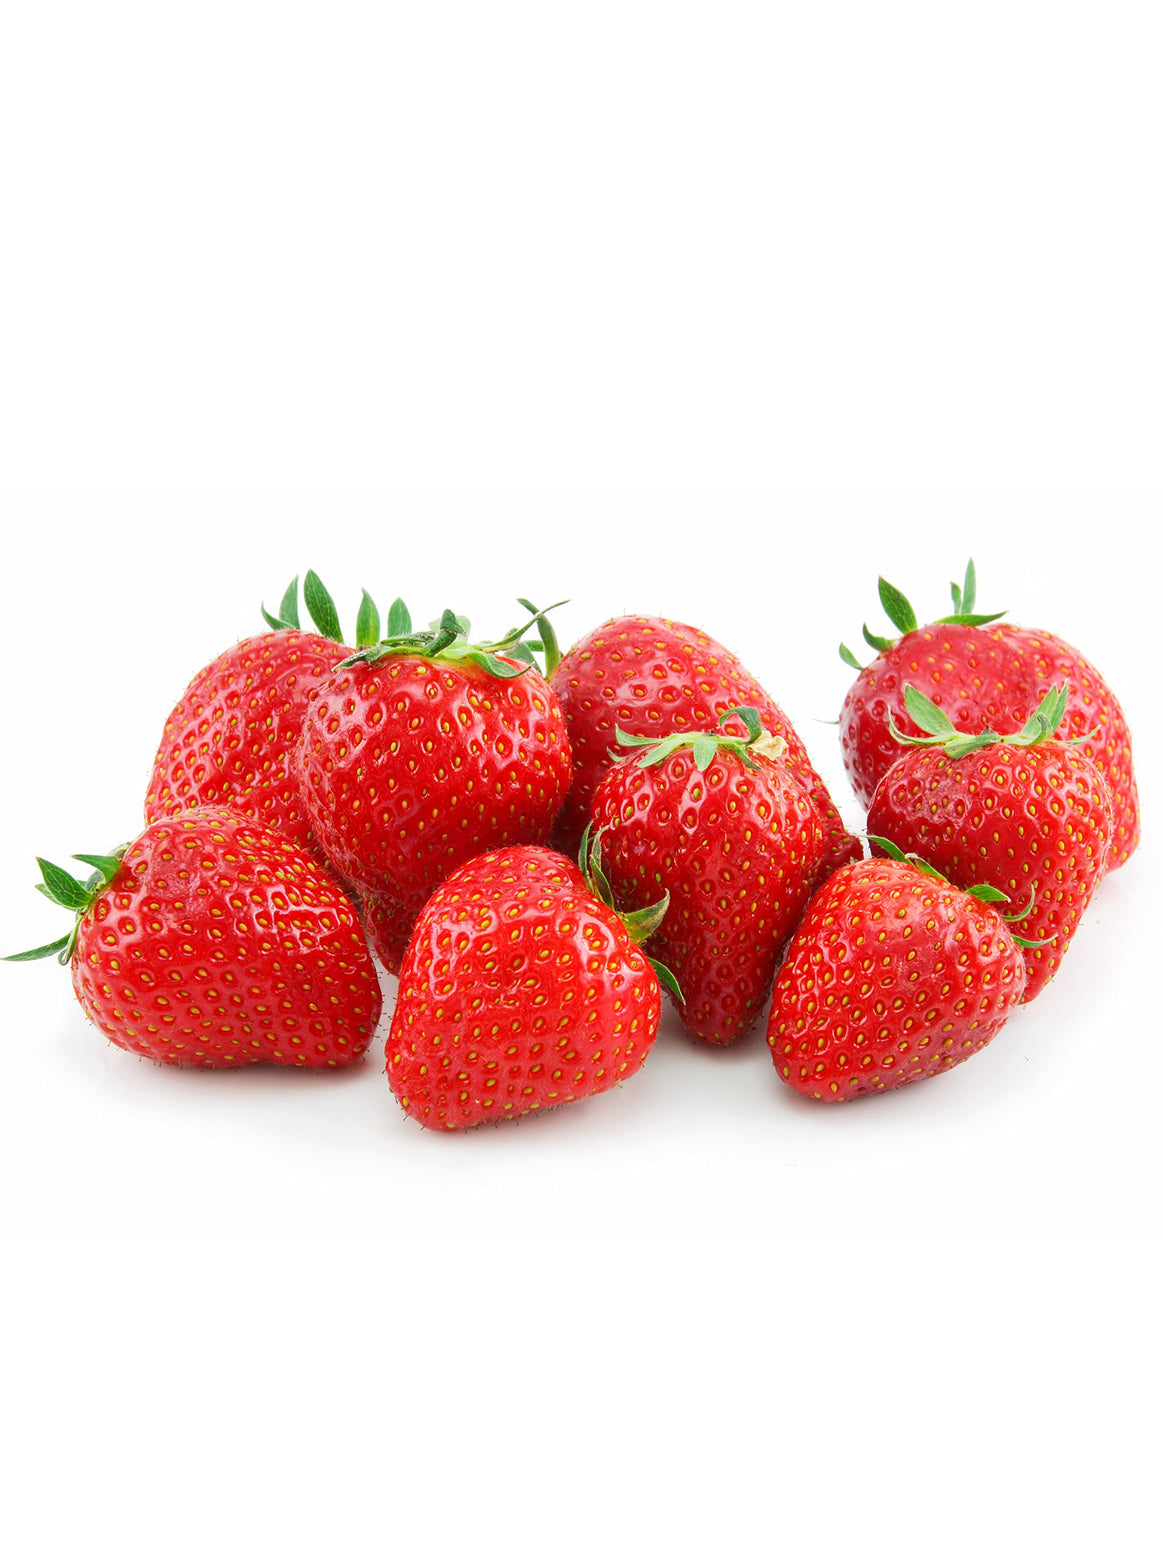 Organic Strawberries - each